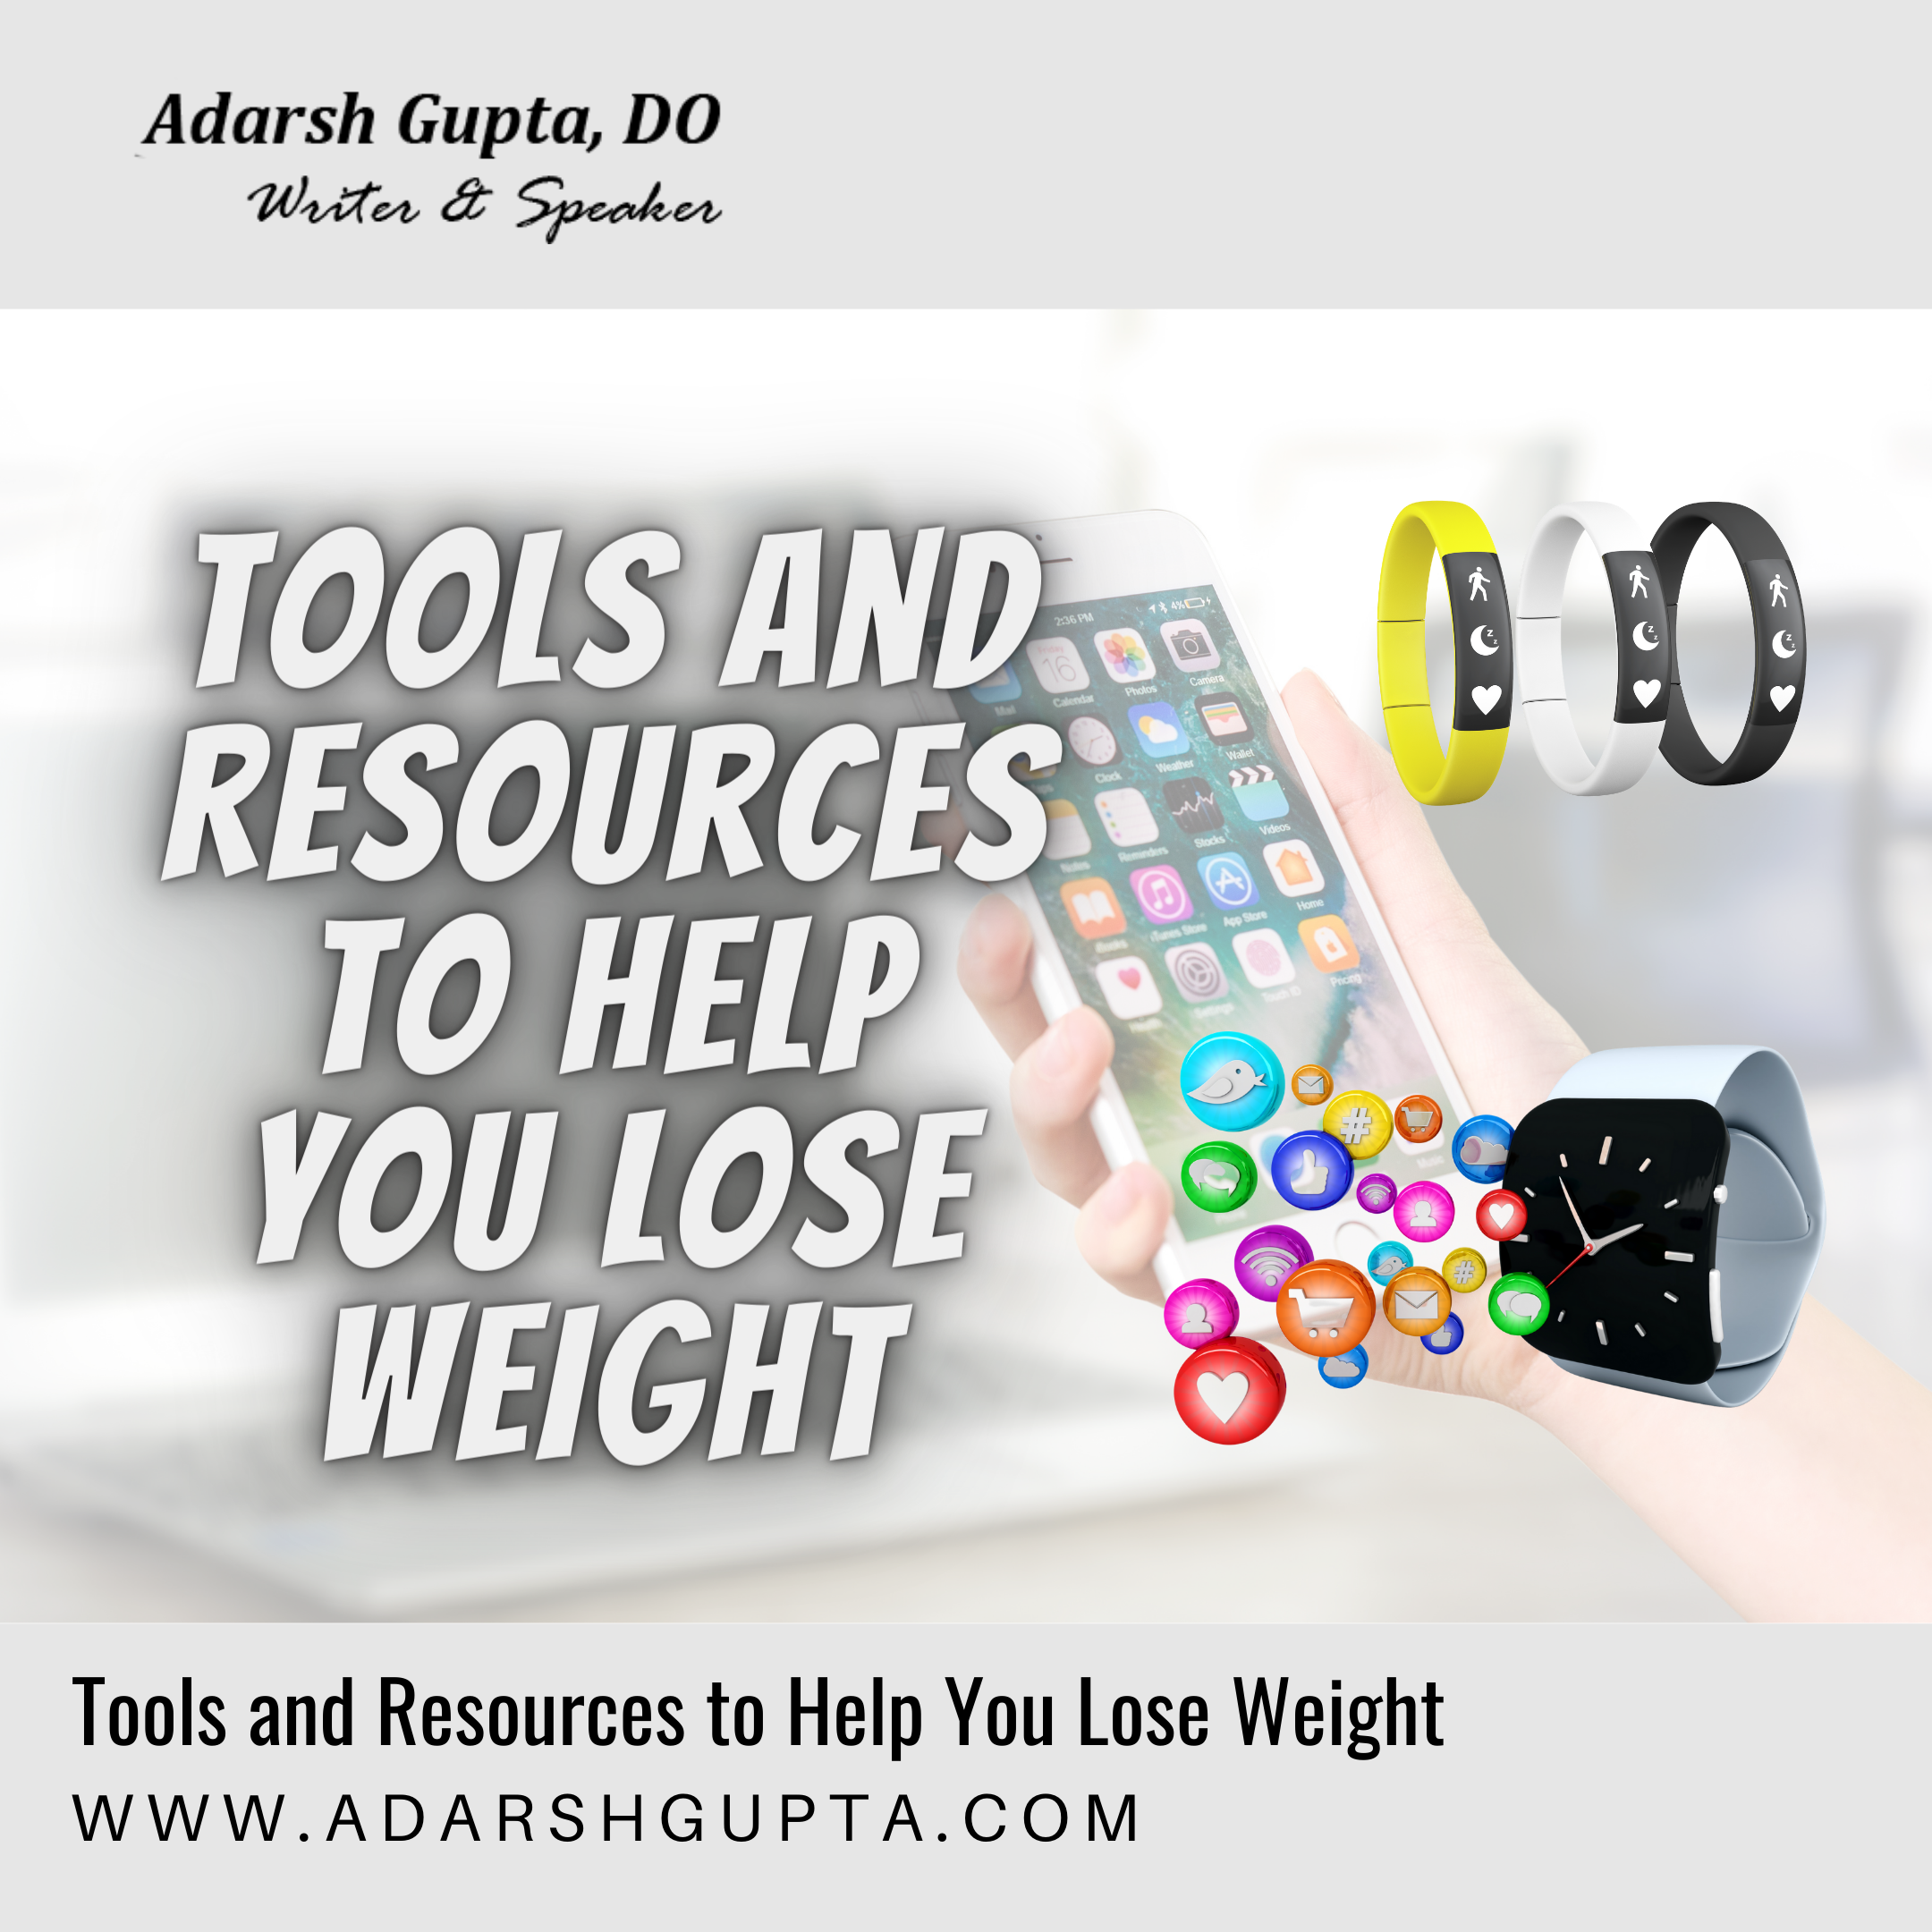 Tools and Resources to help you lose weight